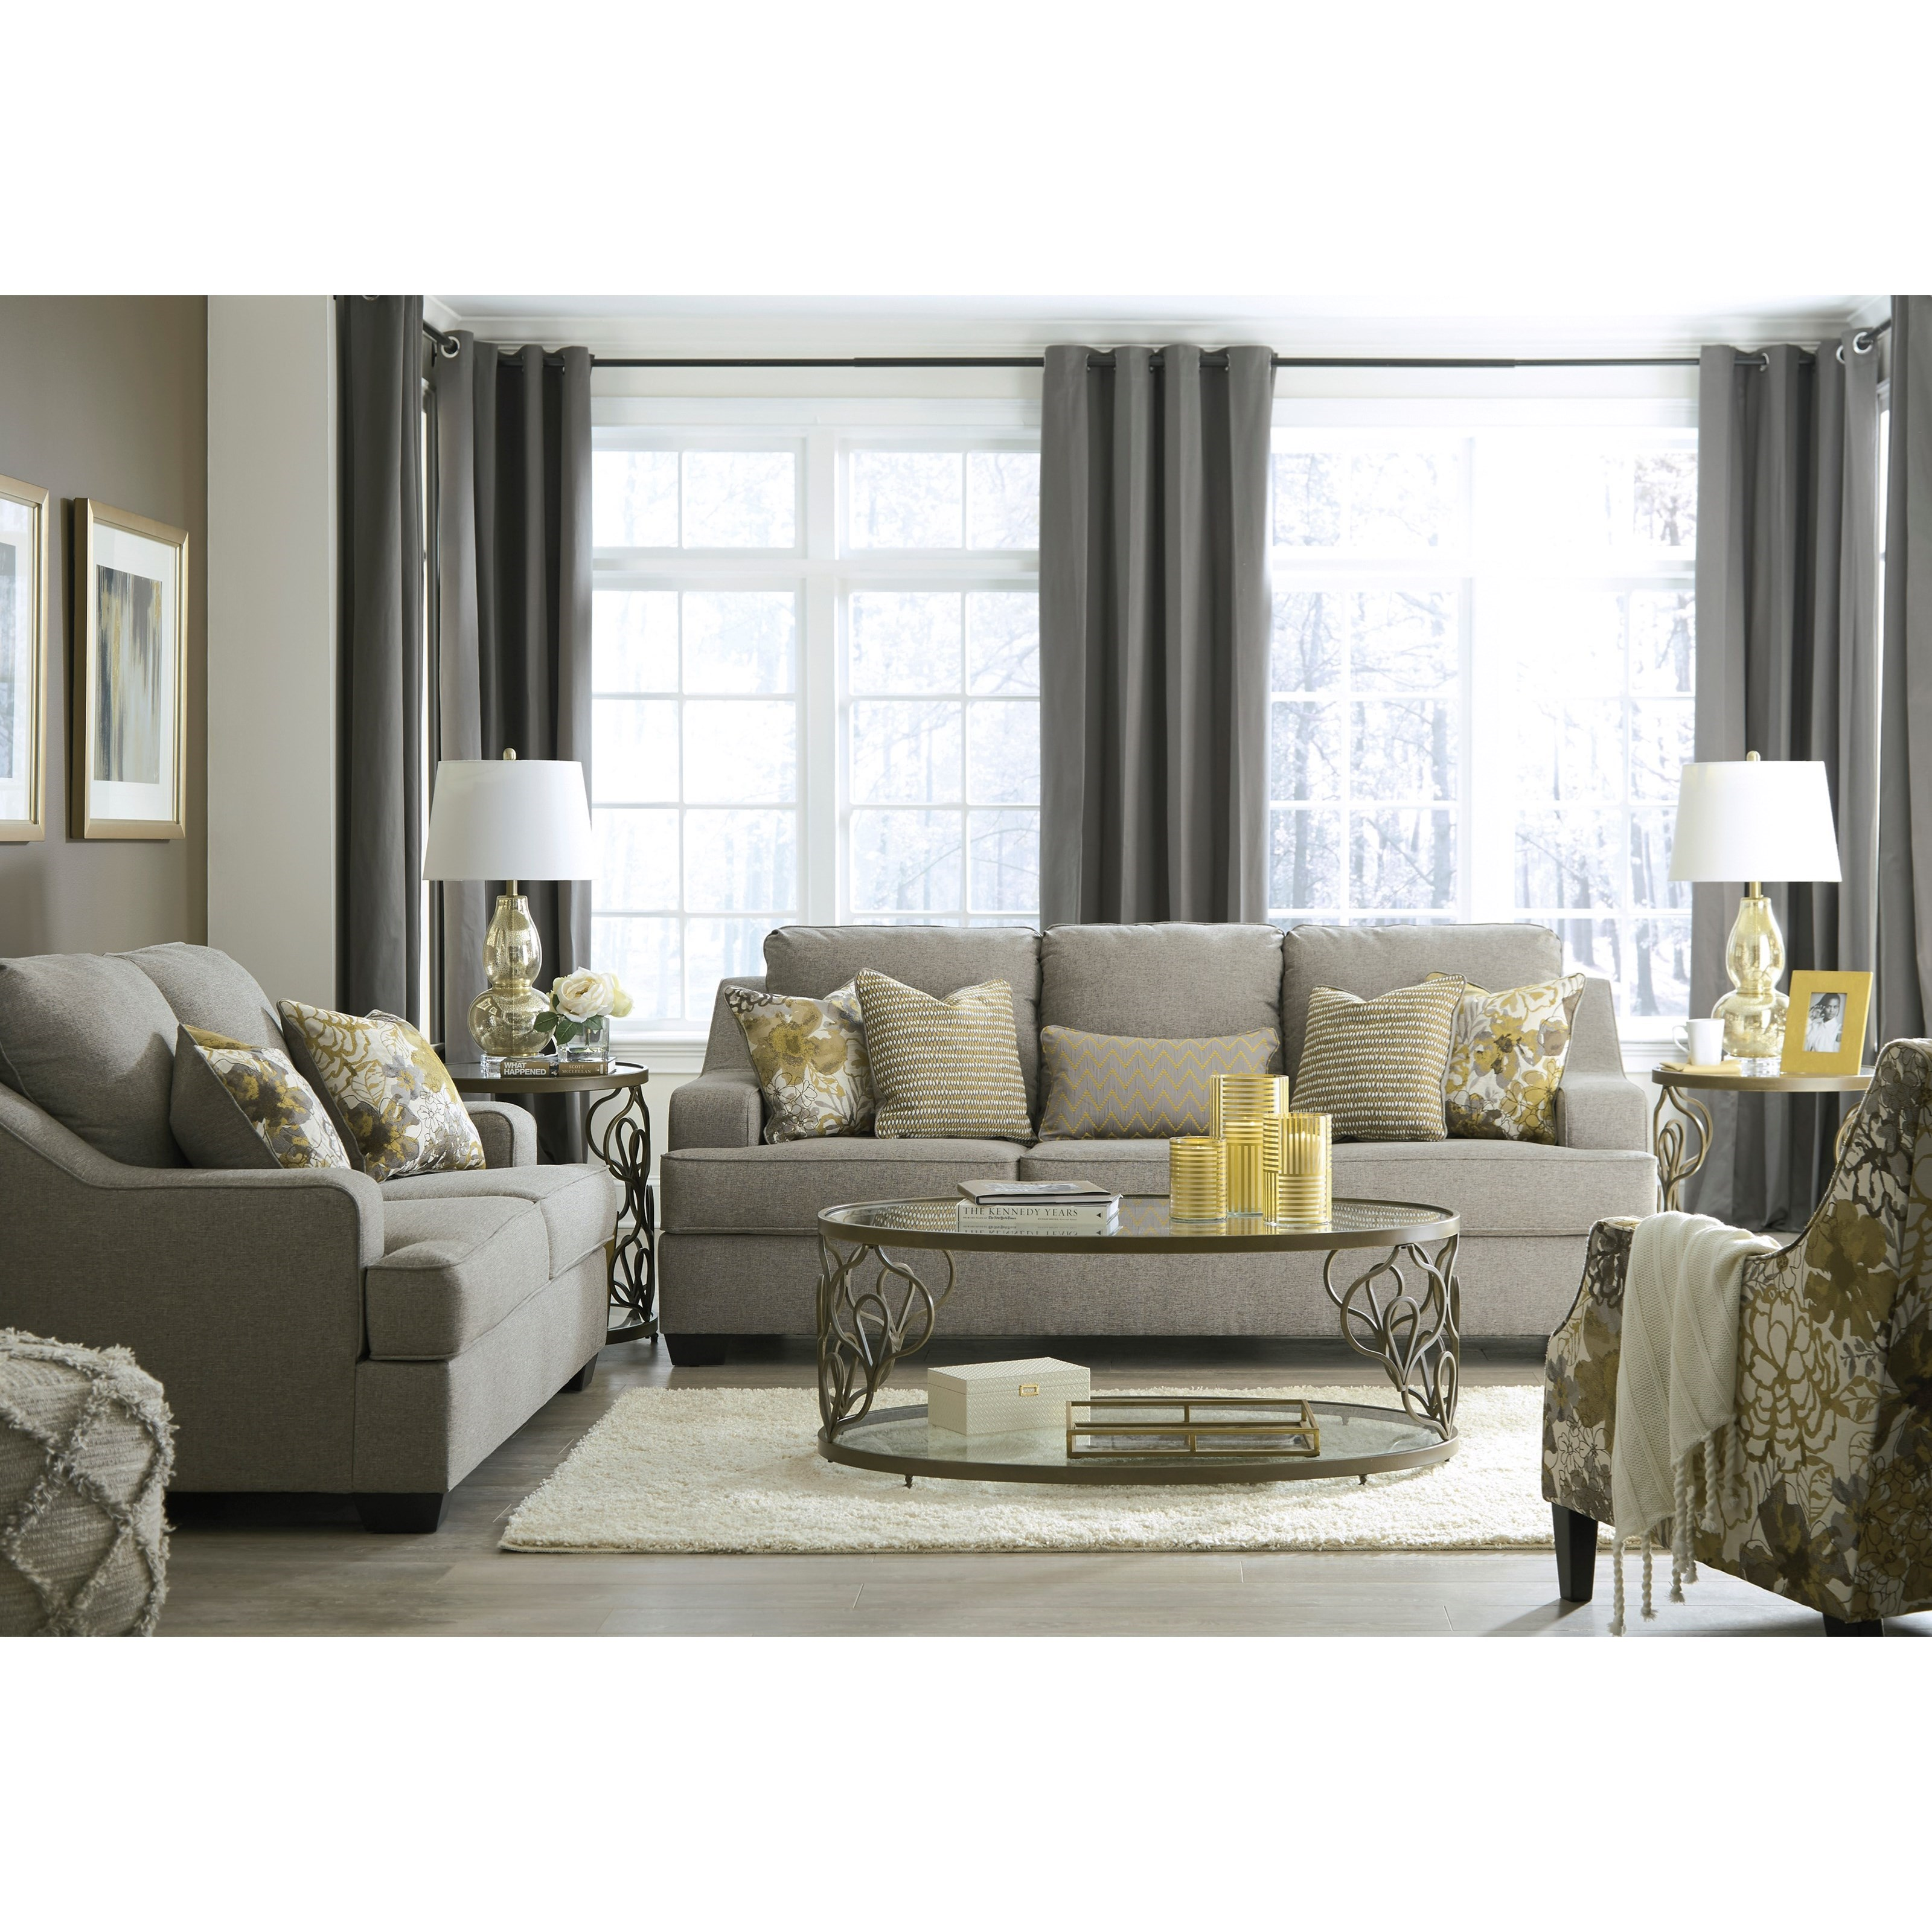 Benchcraft Mandee Stationary Living Room Group Pilgrim Furniture City Stationary Living Room